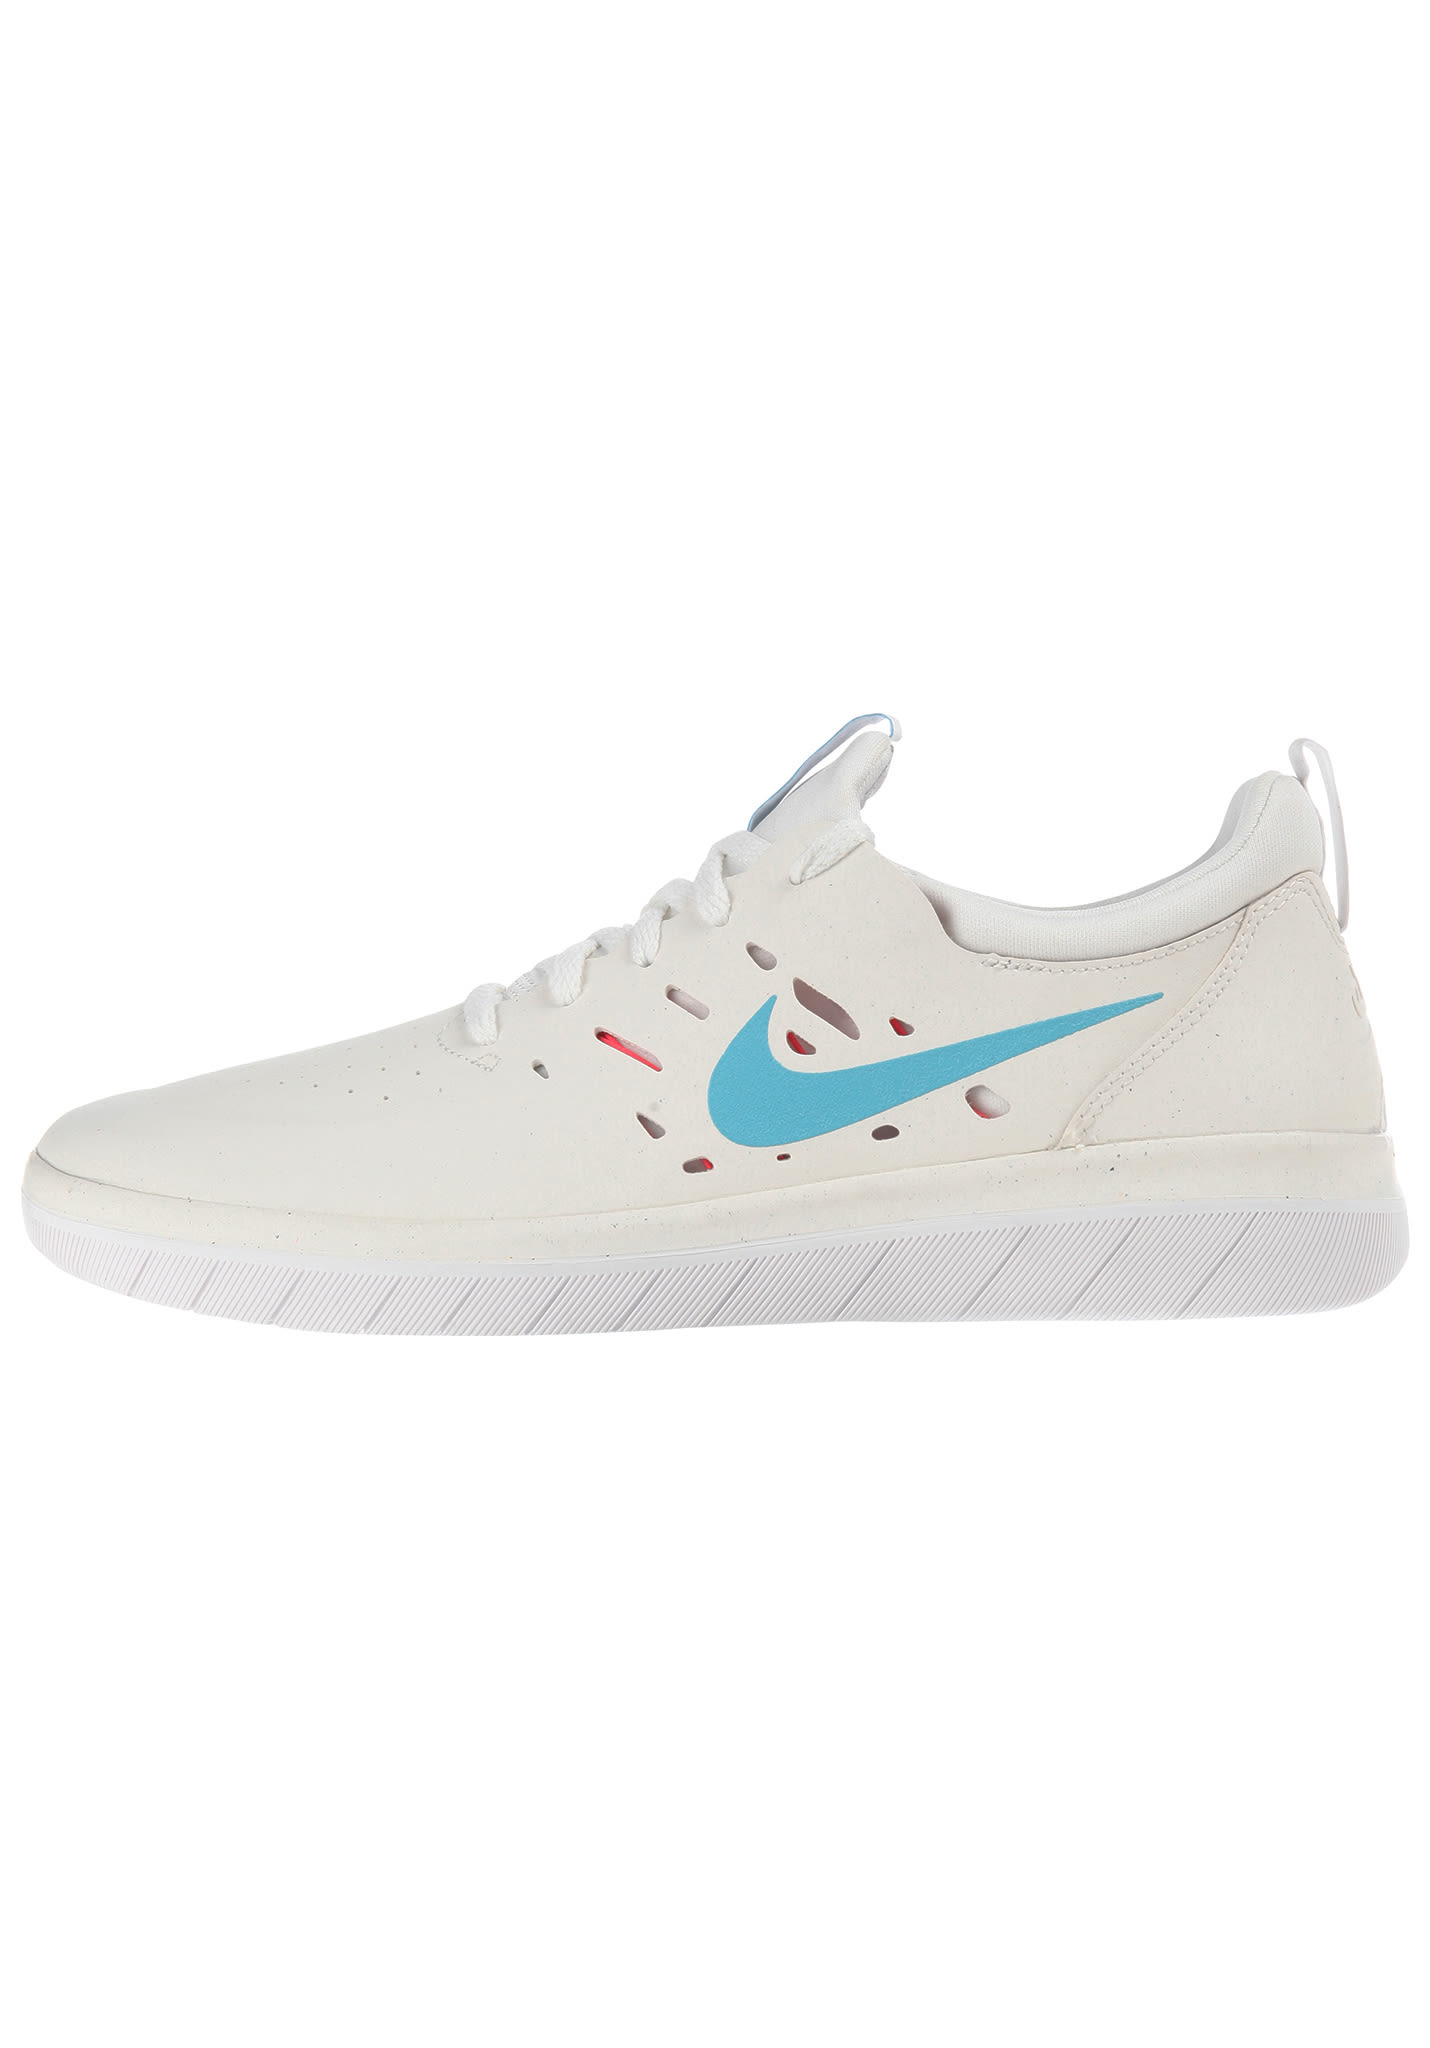 on sale b4103 6d11c NIKE SB Nyjah Free - Sneakers for Men - White - Planet Sports